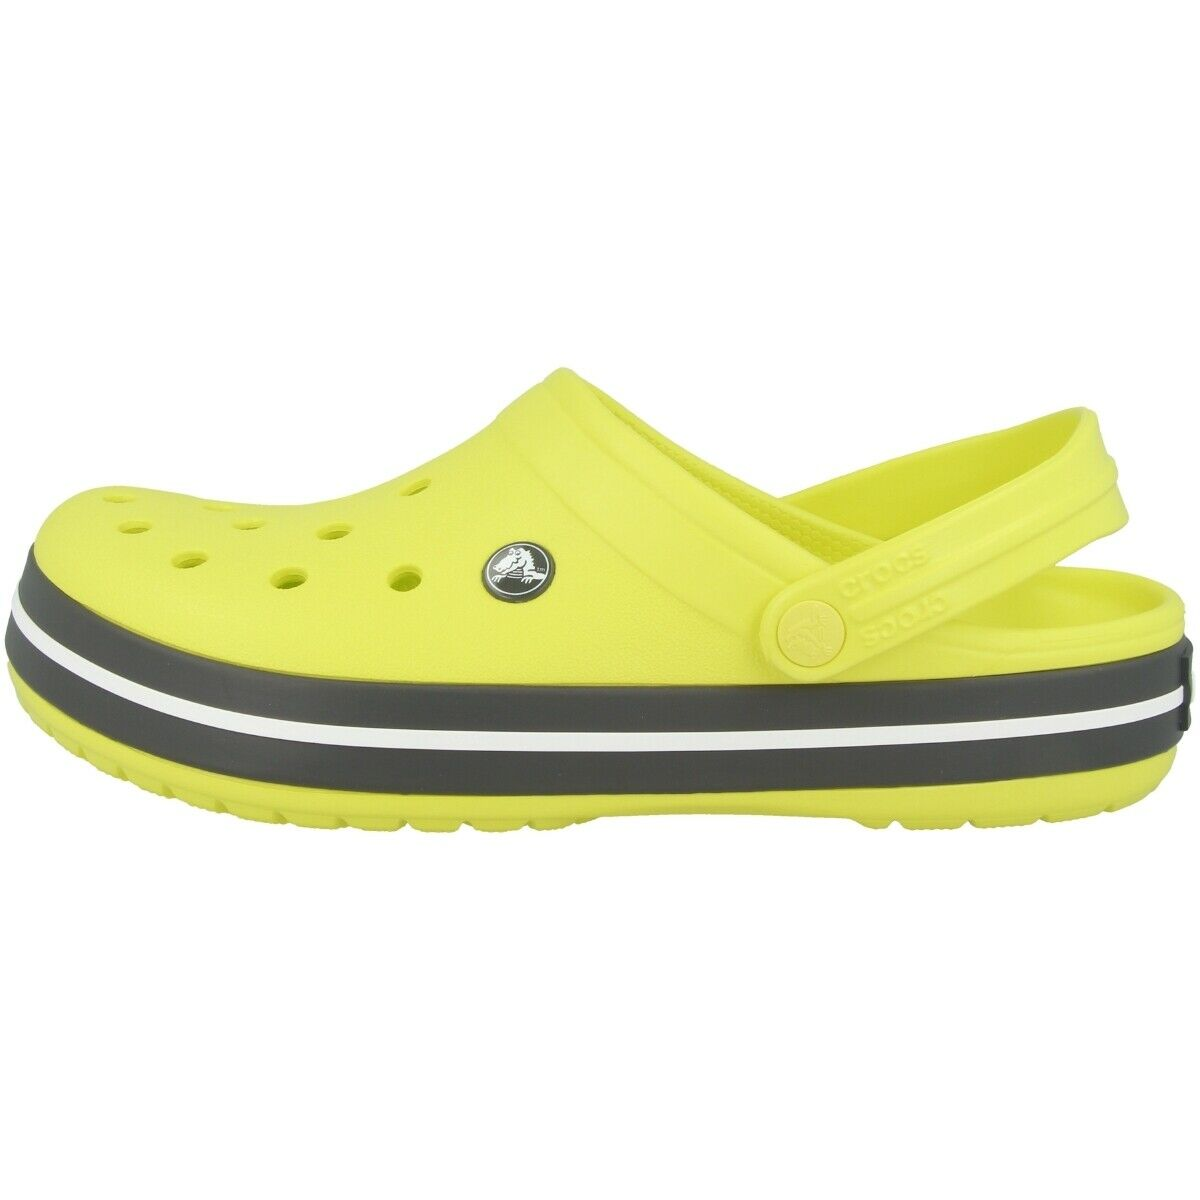 Crocs Crocband Clog Sandals shoes Beach shoes Clogs Citrus Grey 11016-725